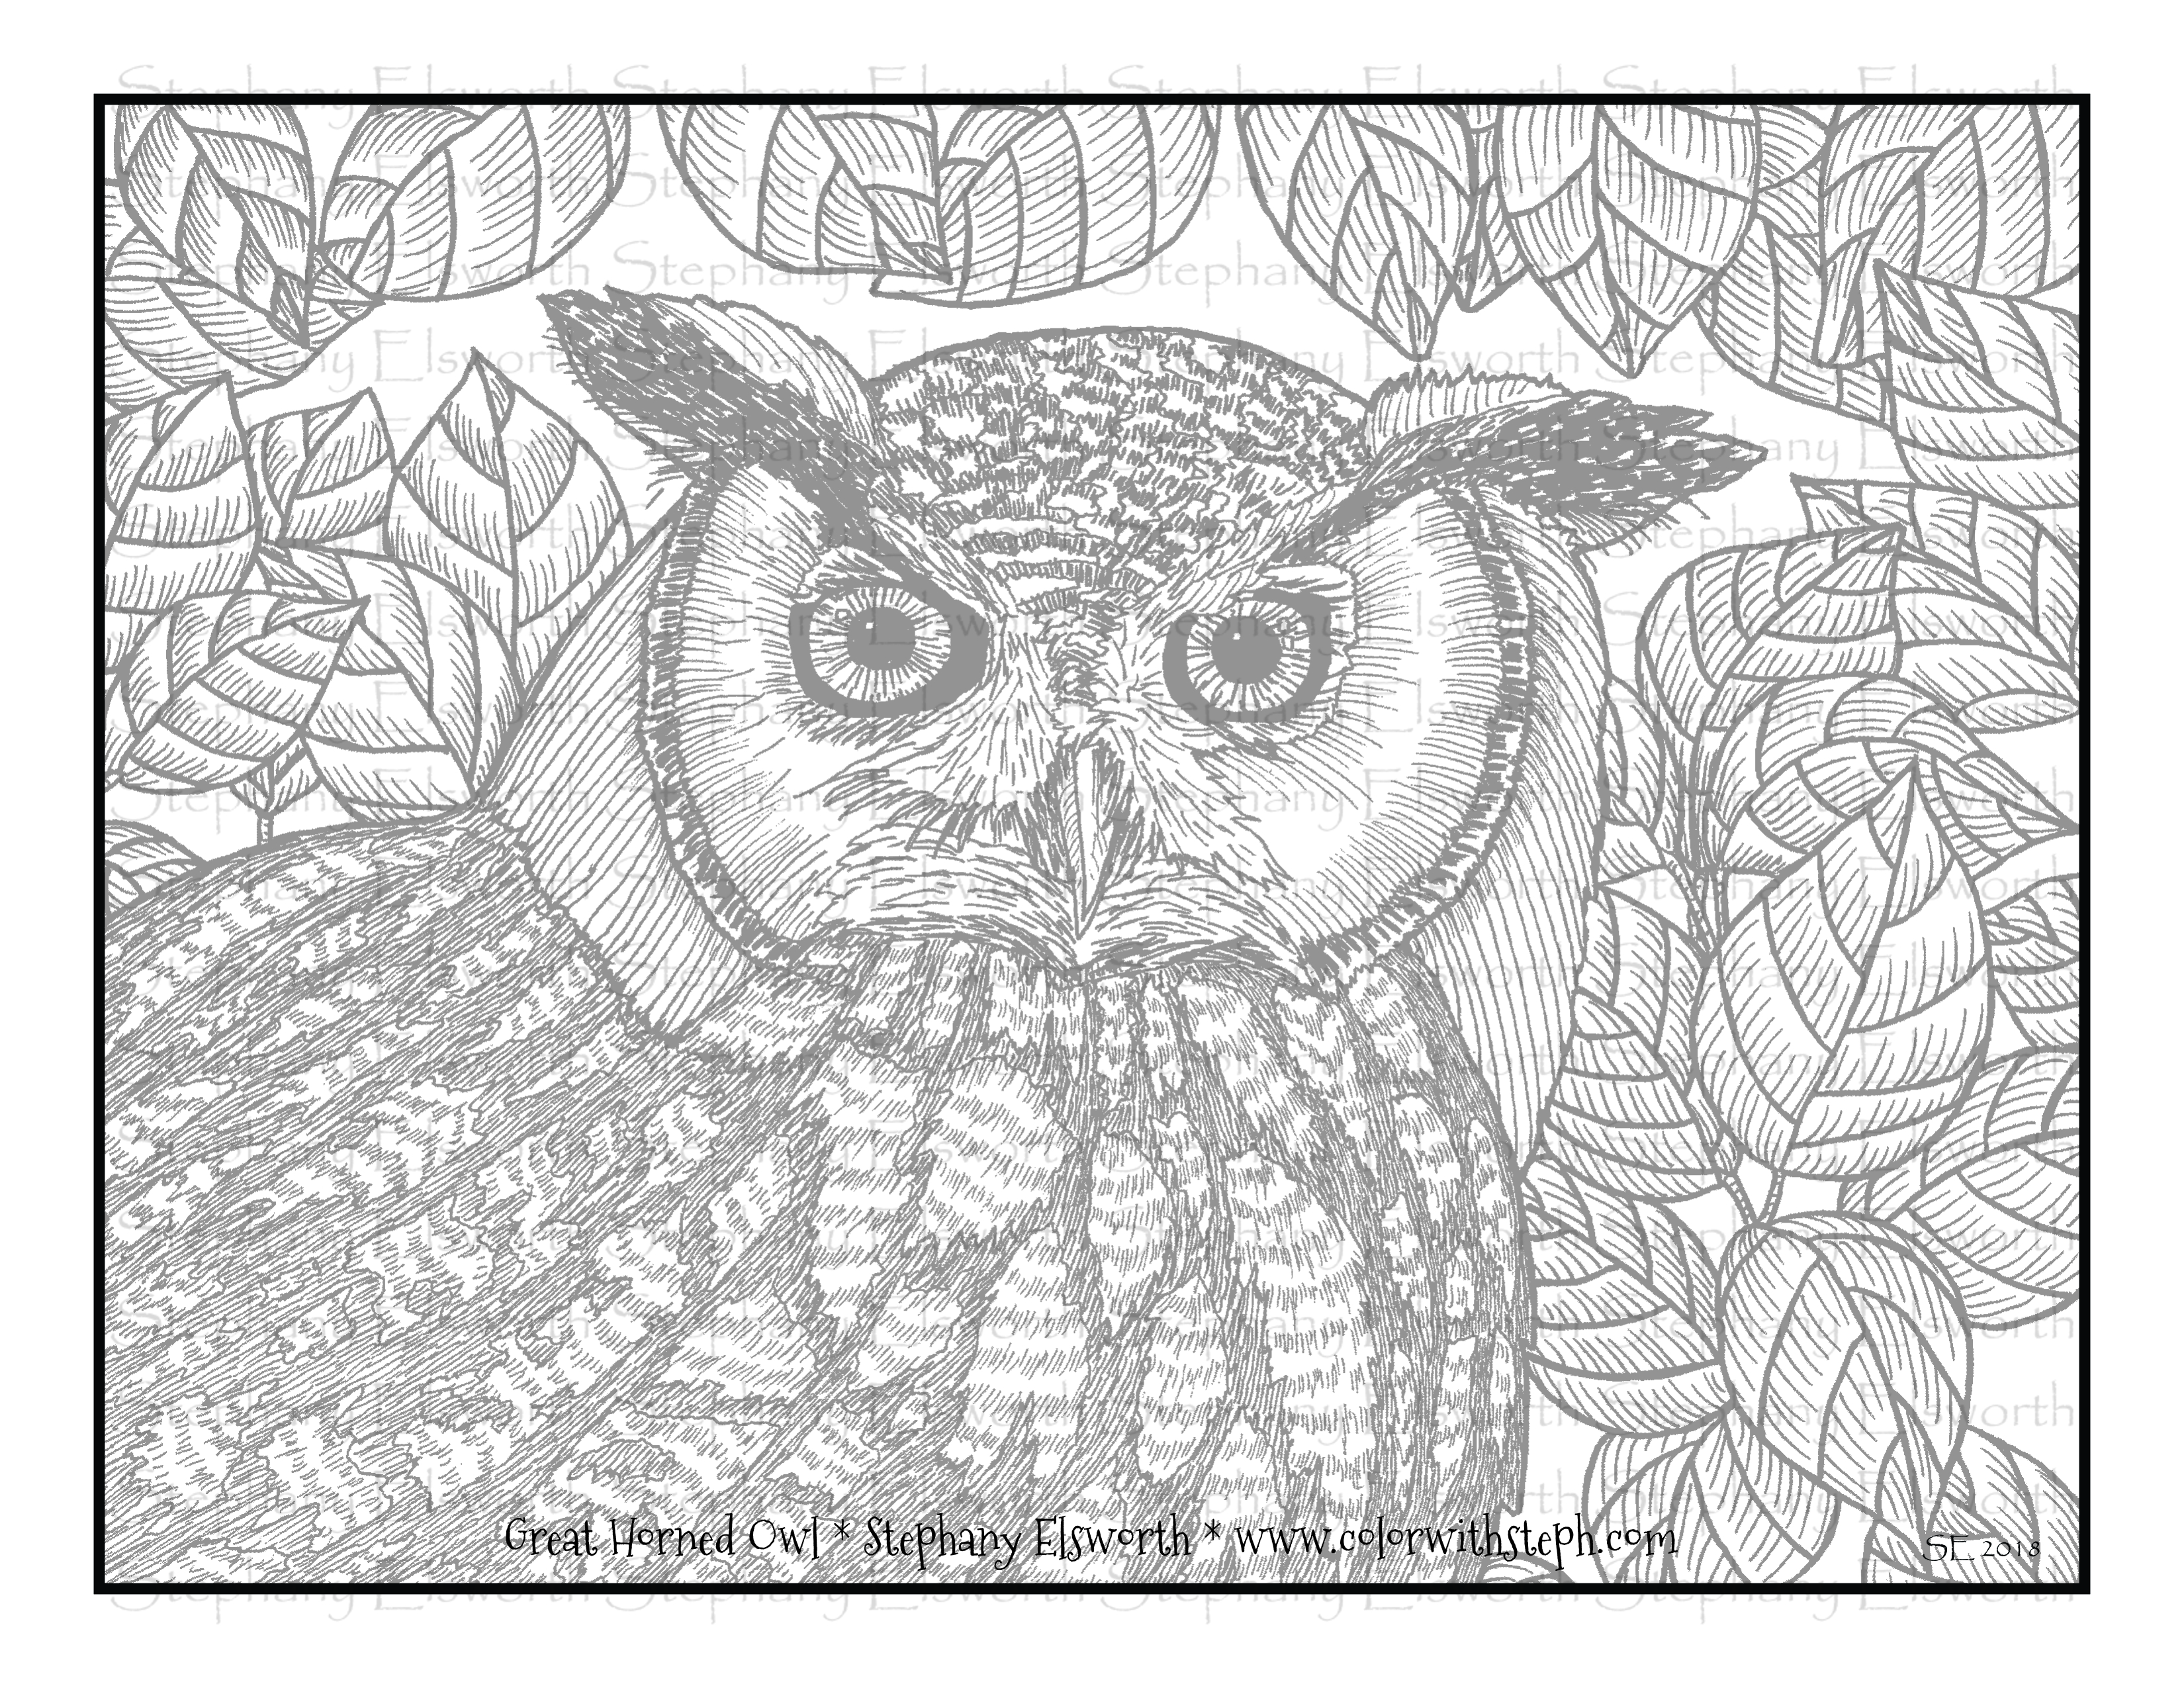 Great Horned Owl Free Printable Grayscale Coloring Page